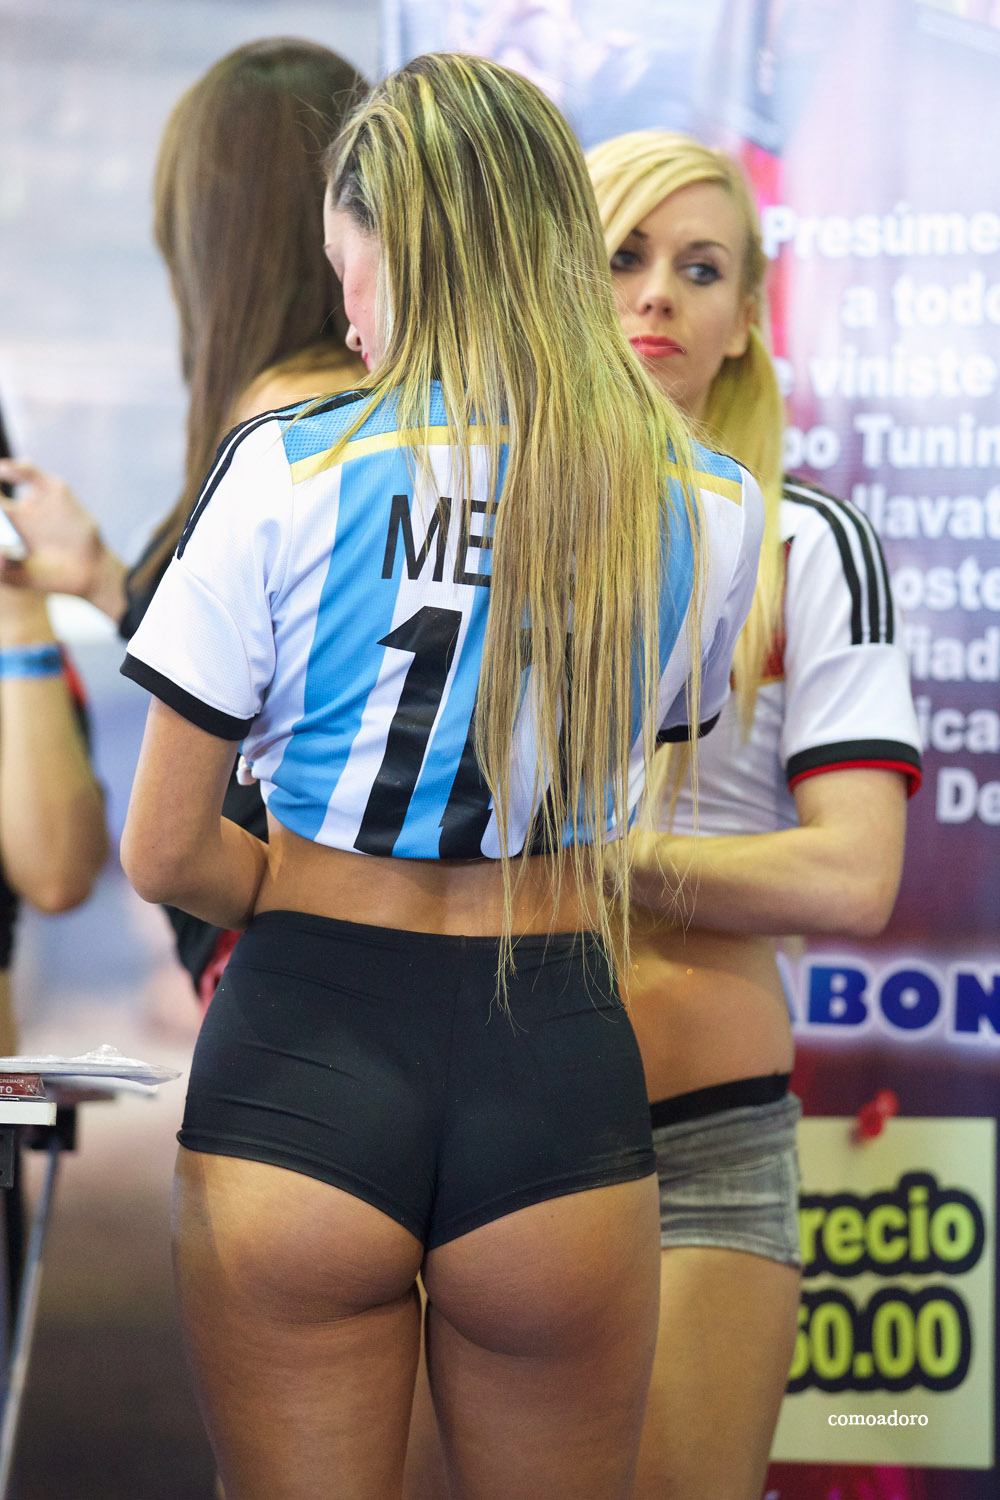 Argentina Blonde Perfect Ass In Spandex Shorts Promo Girl-4255